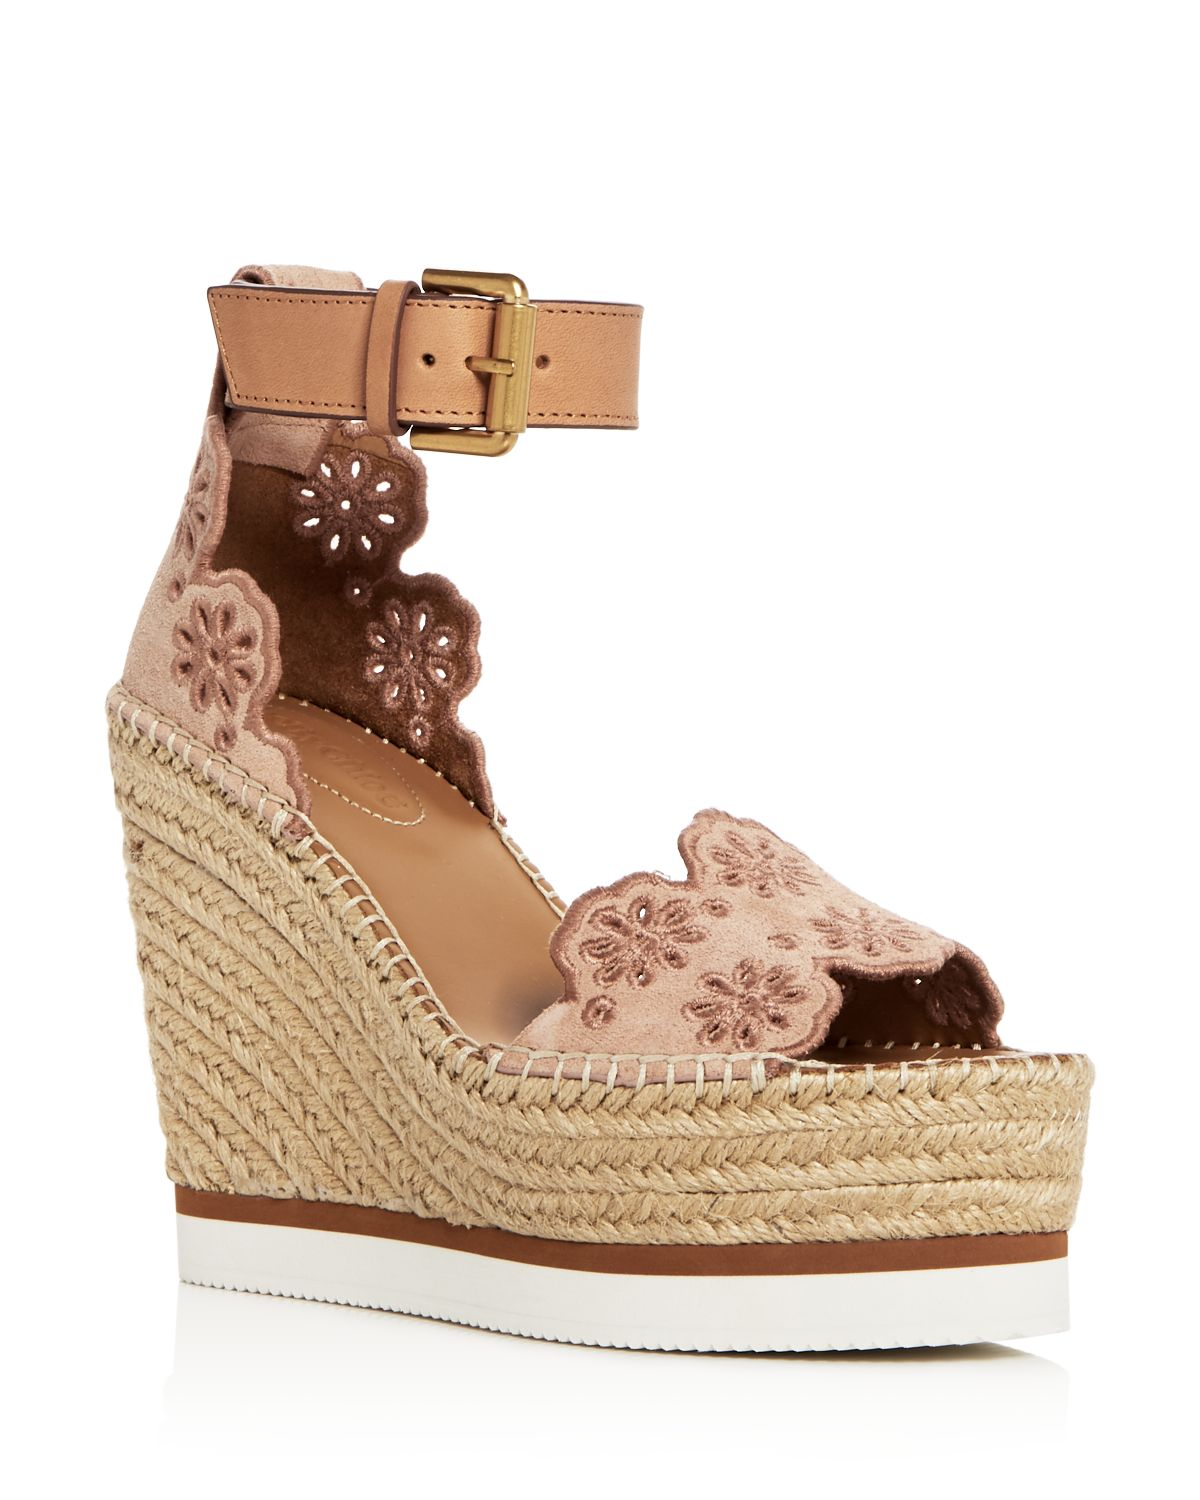 Chloé Cutout Wedges Sandals